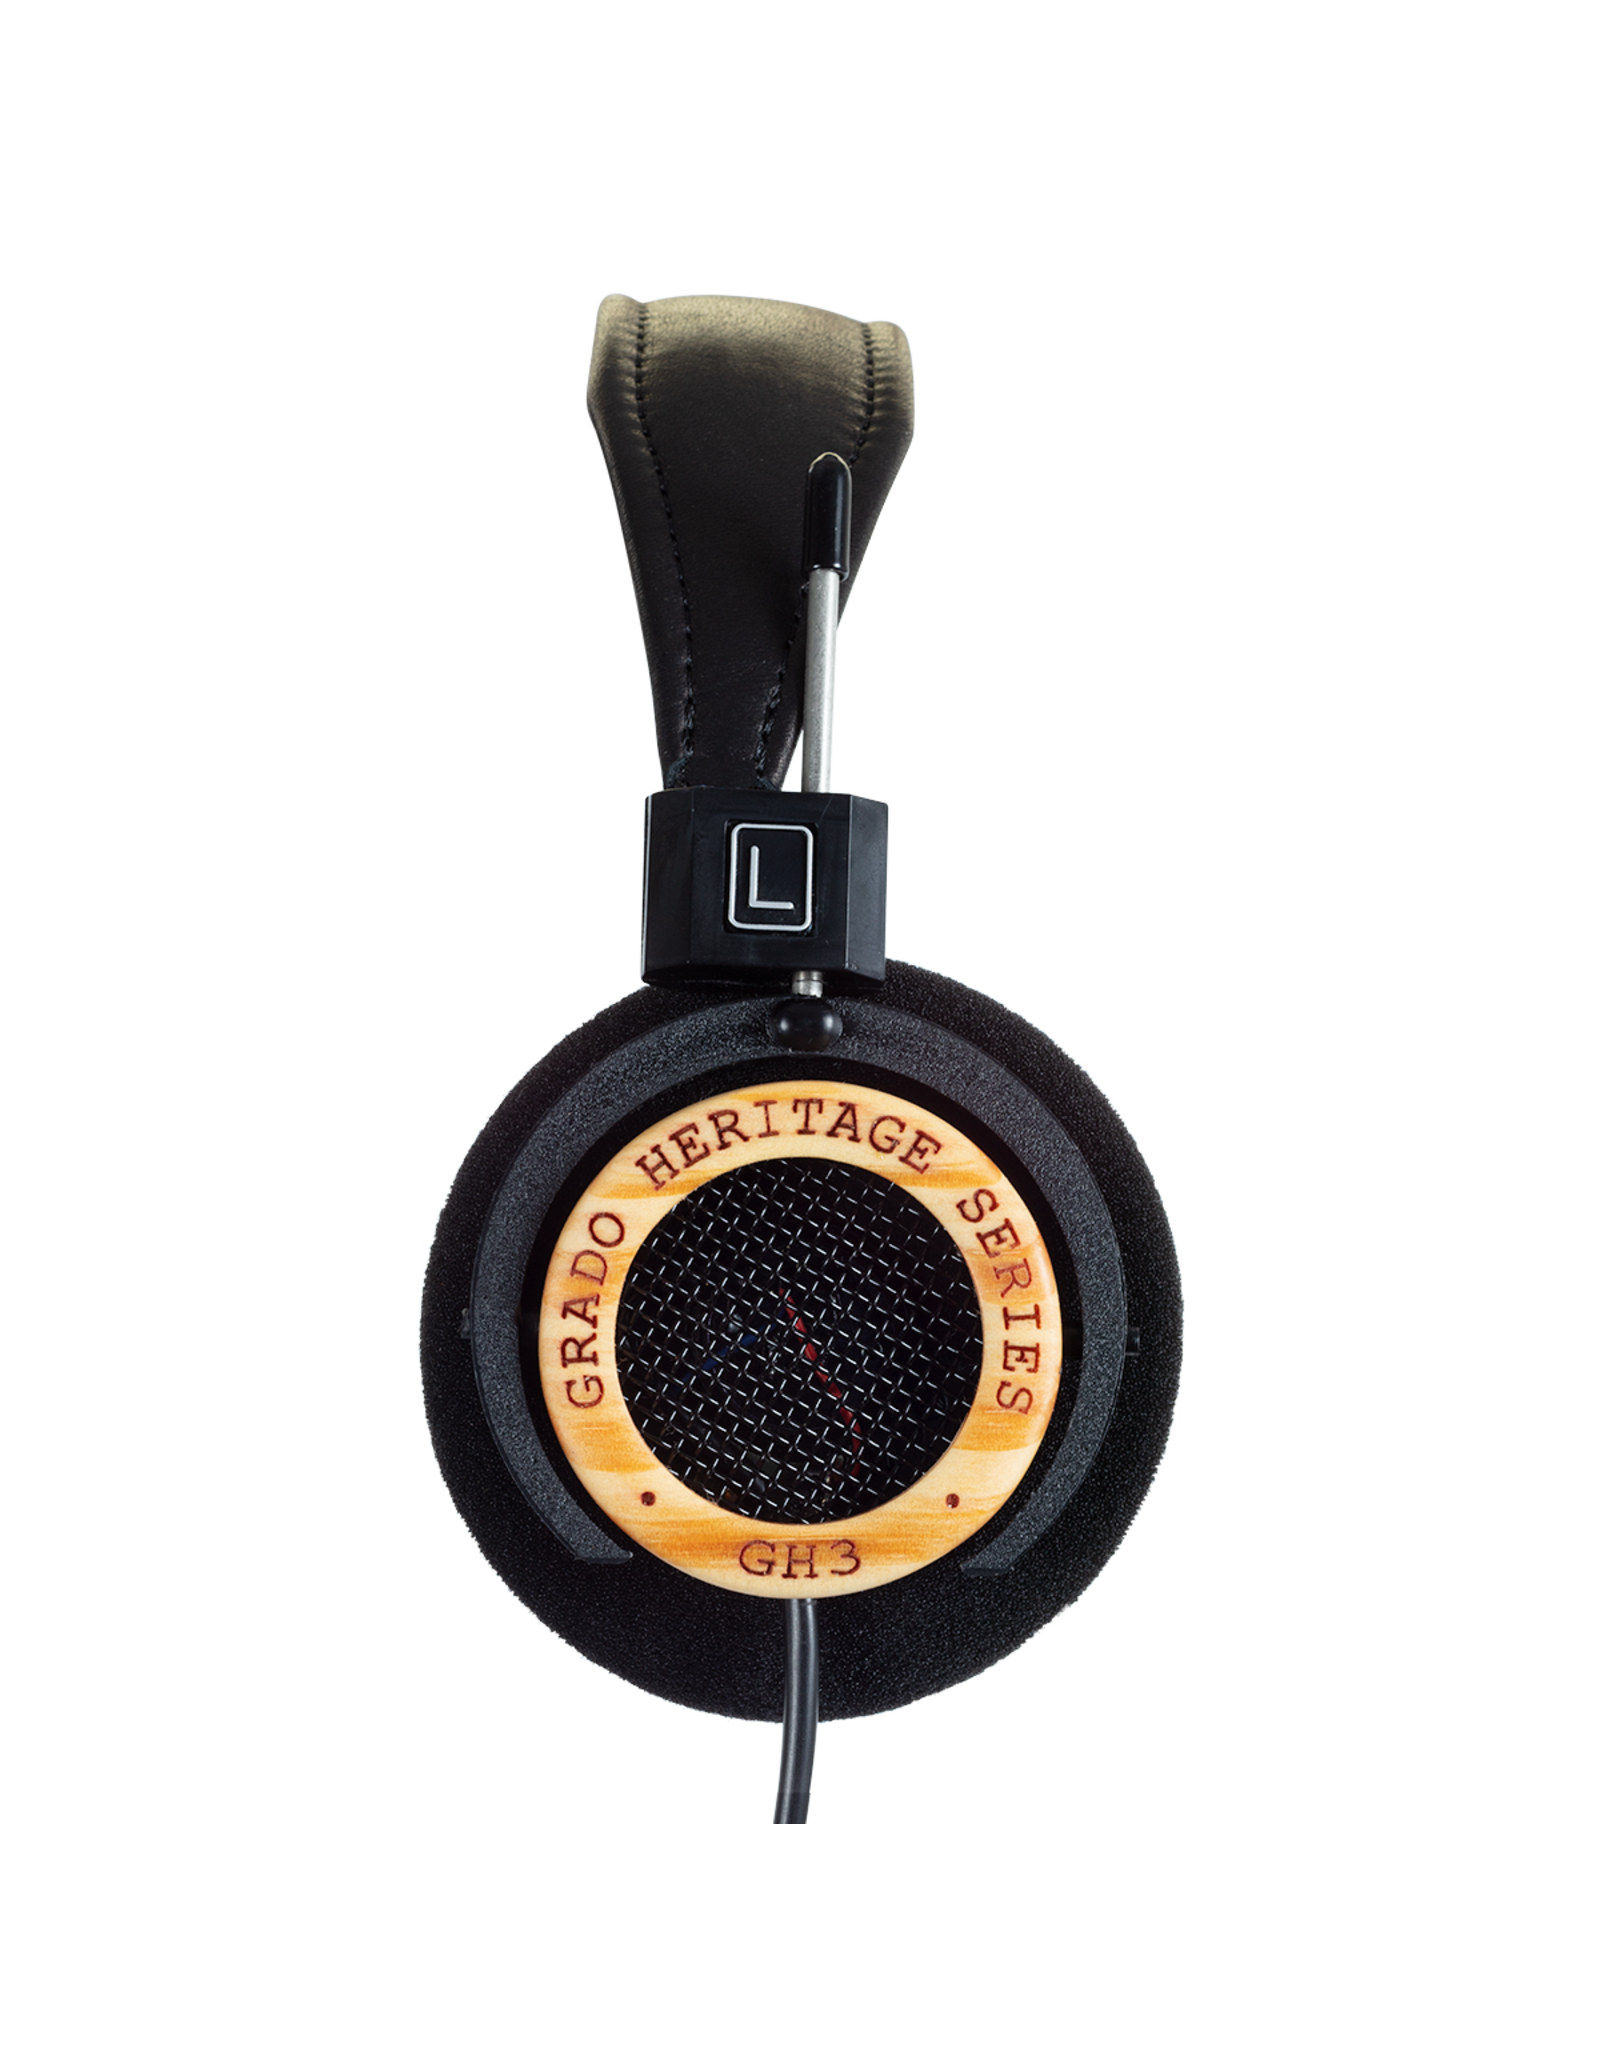 Grado Labs Grado Limited Edition GH3 Headphones